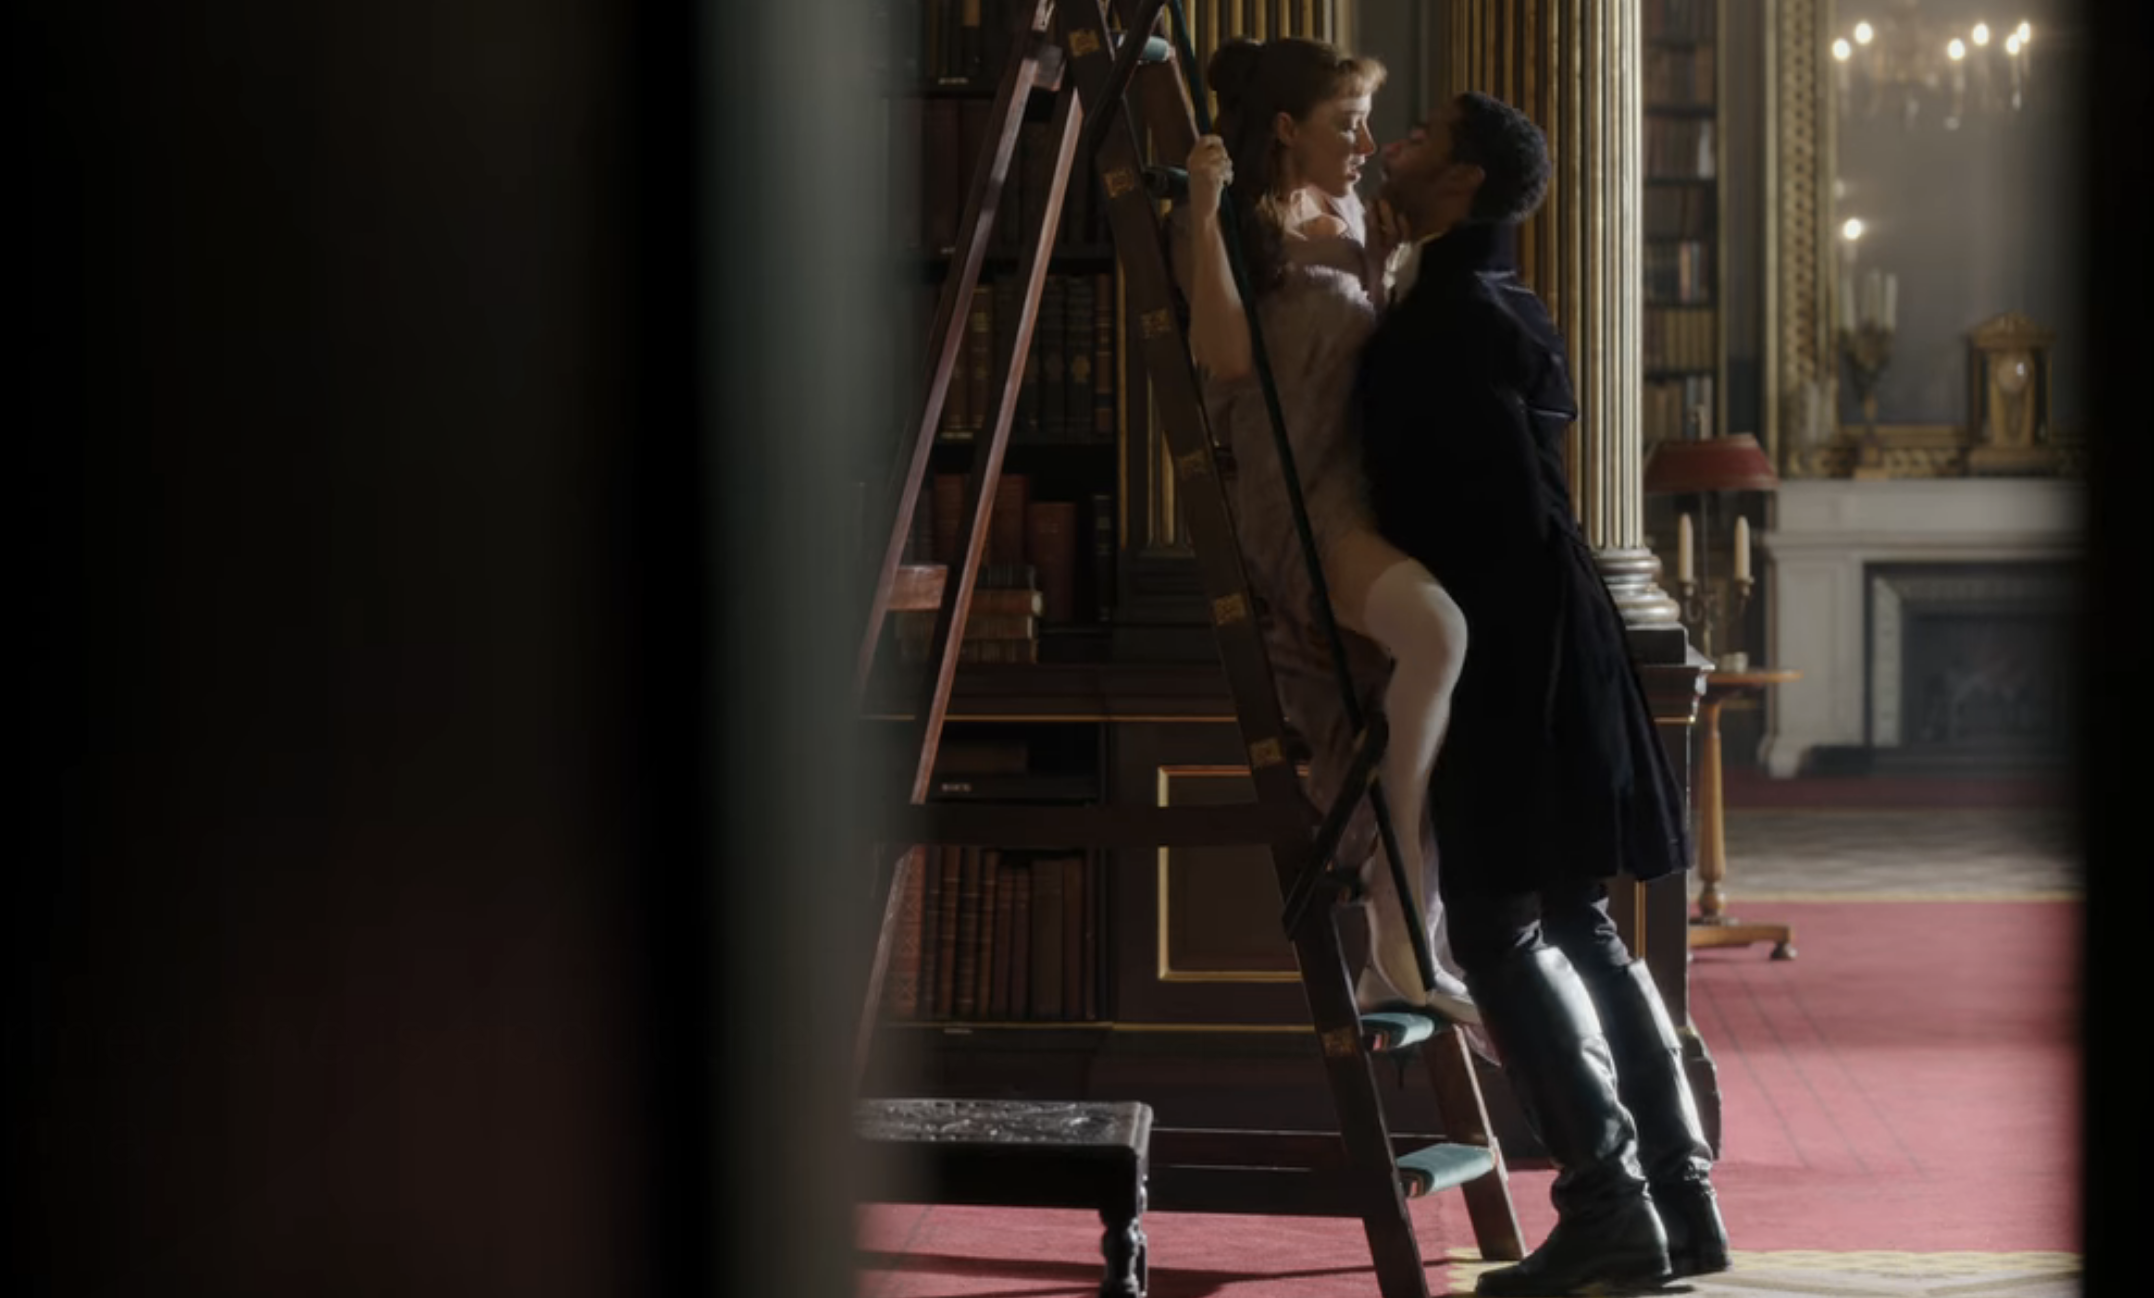 """Simon and Daphne having sex on a ladder in a library in """"Bridgerton"""" episode 6"""